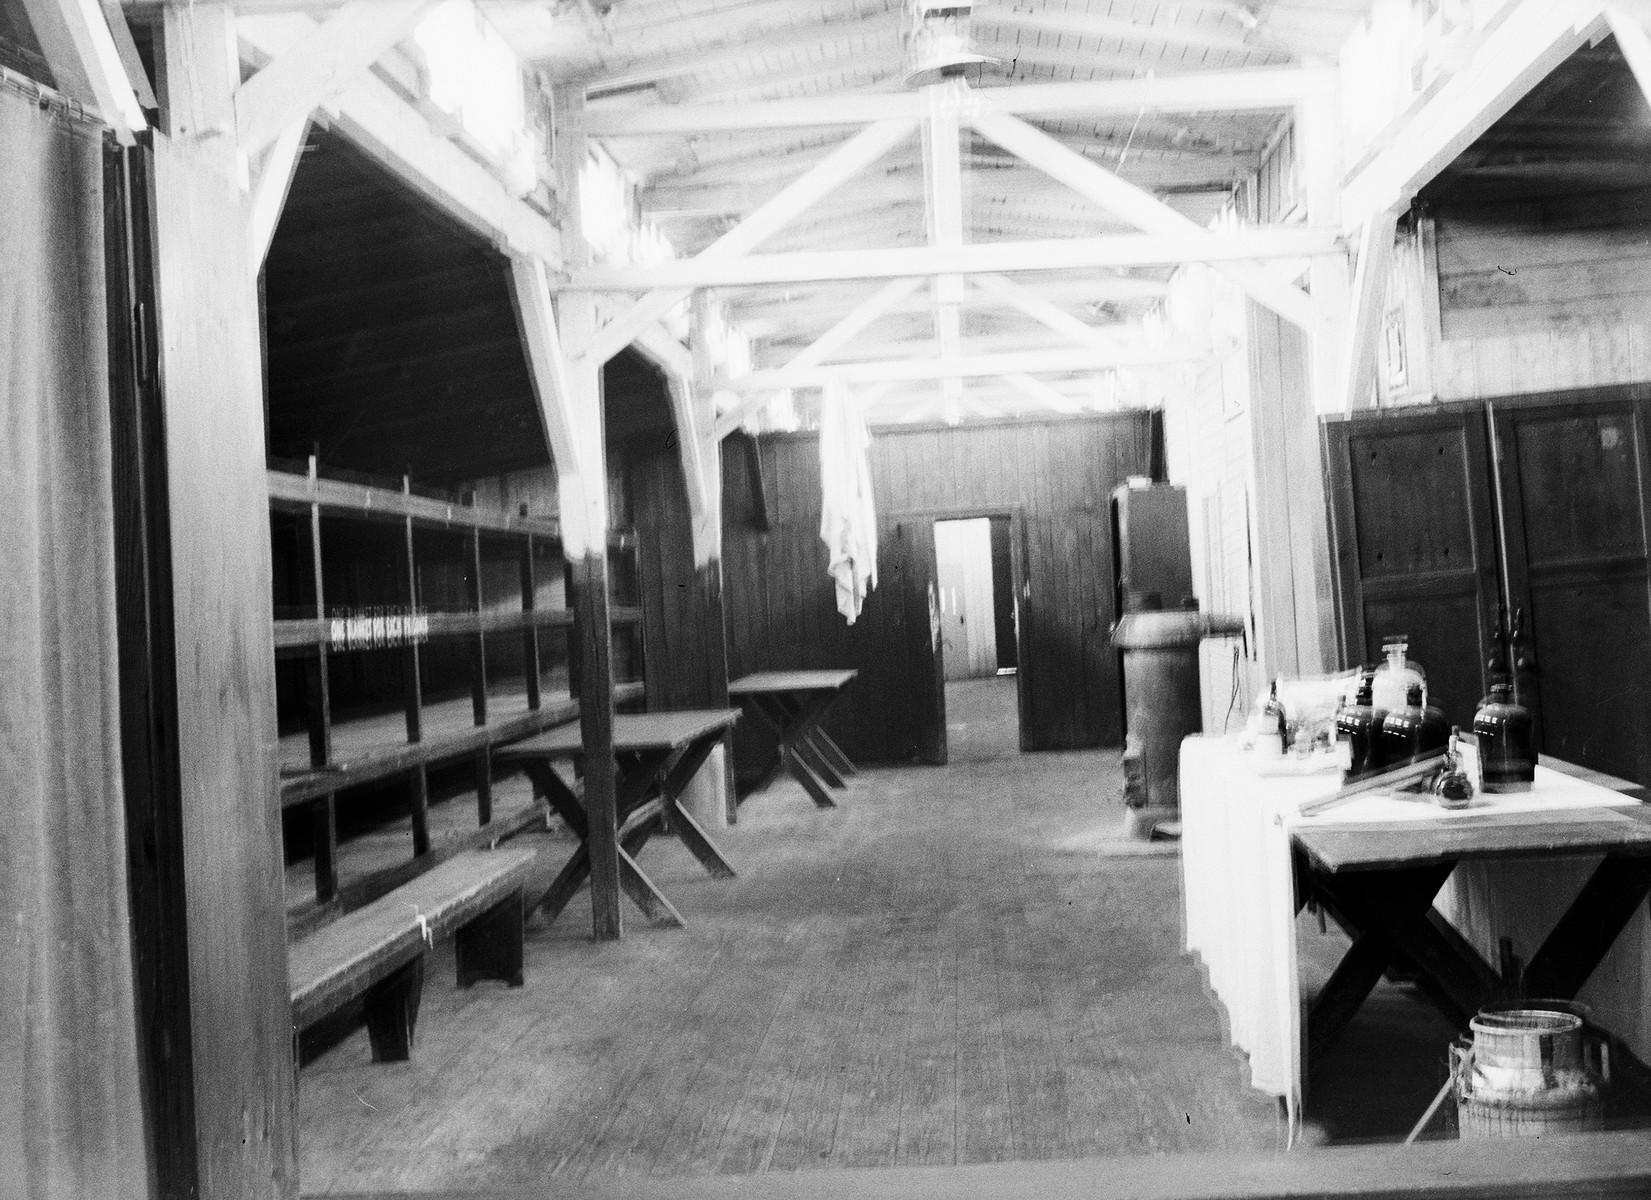 Interior view of a barrack at Buchenwald. Possibly taken after sanitation efforts were carried out by the 45th Evacuation Hospital in order to curb the spread of tuberculosis in camp.